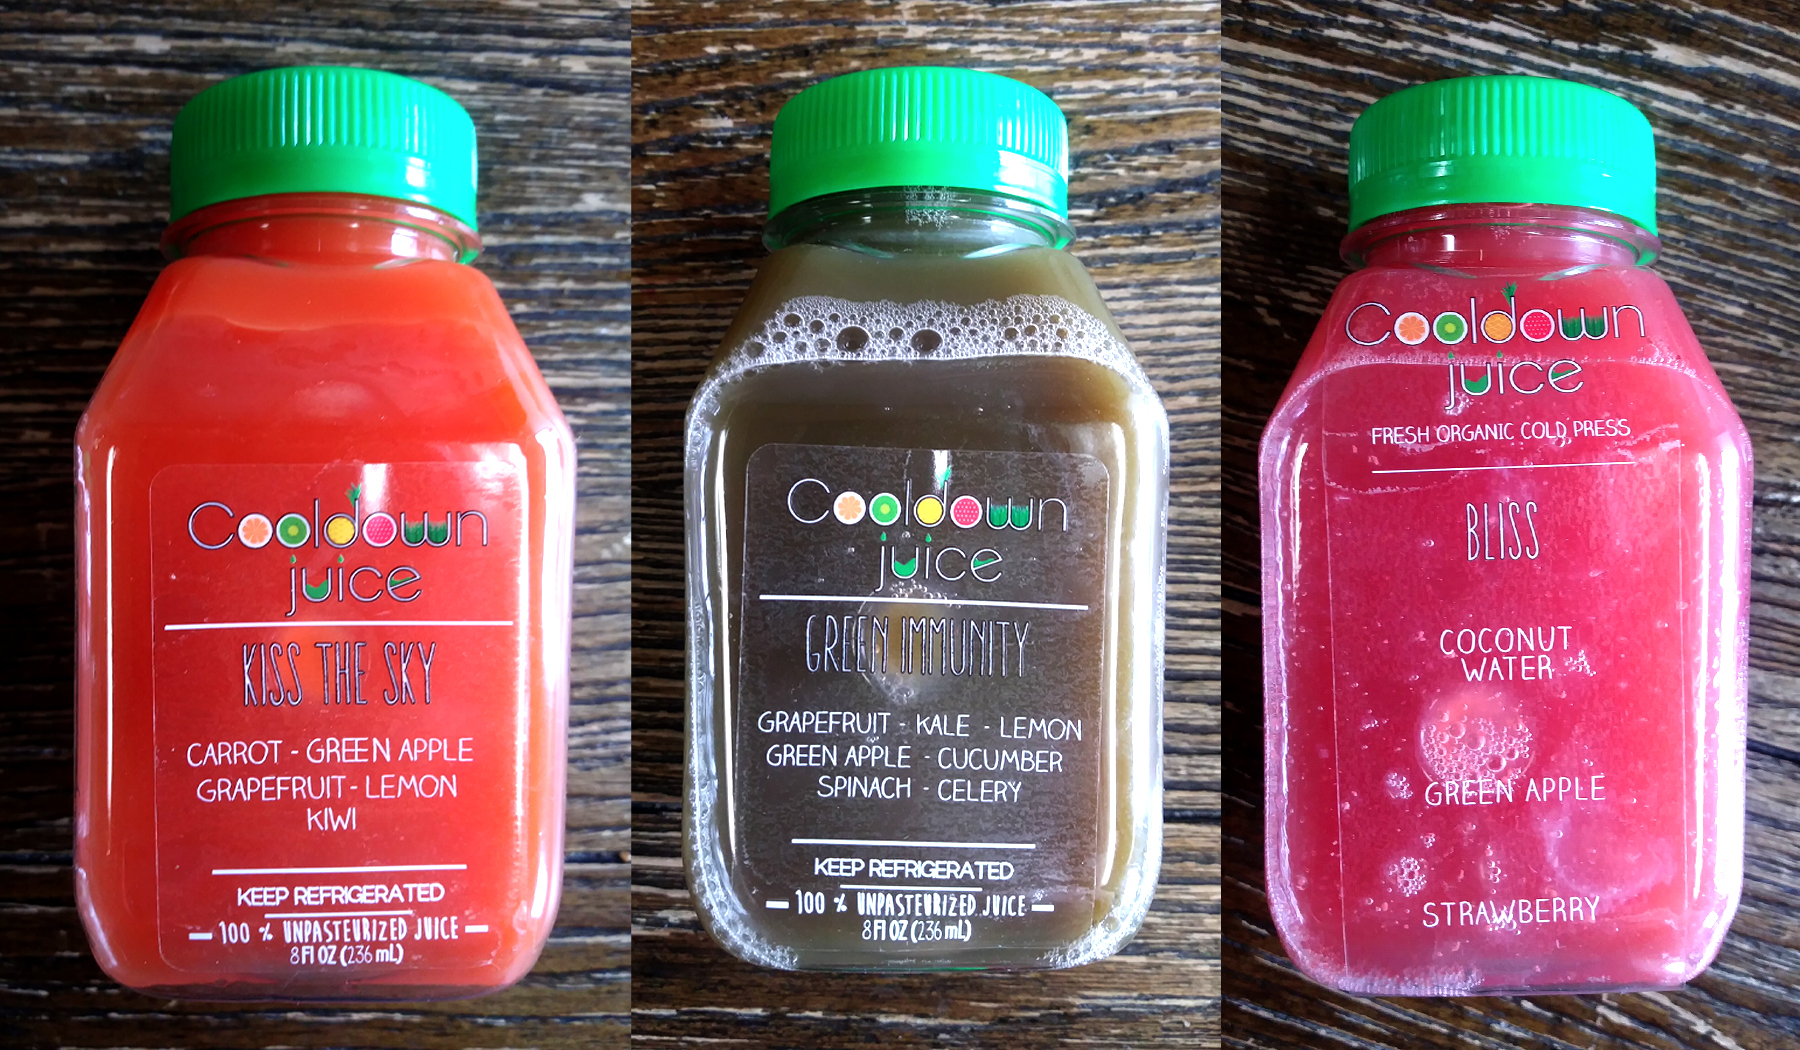 Sample shares from Cooldown Juice.